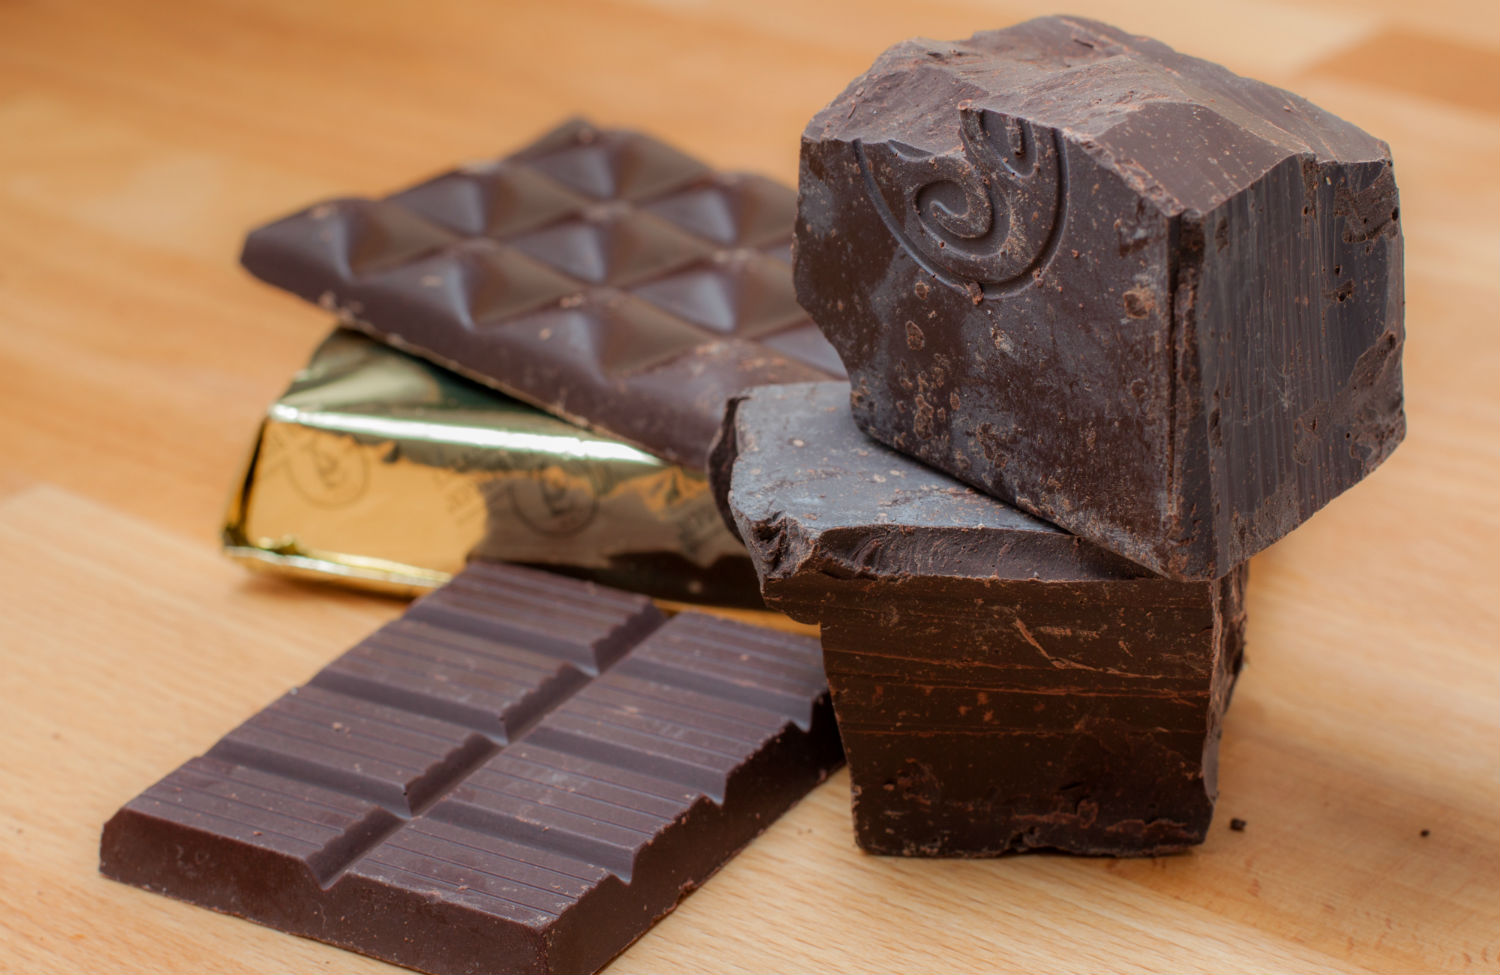 Is Your Favorite Chocolate the Product of Child Labor? | The Nation